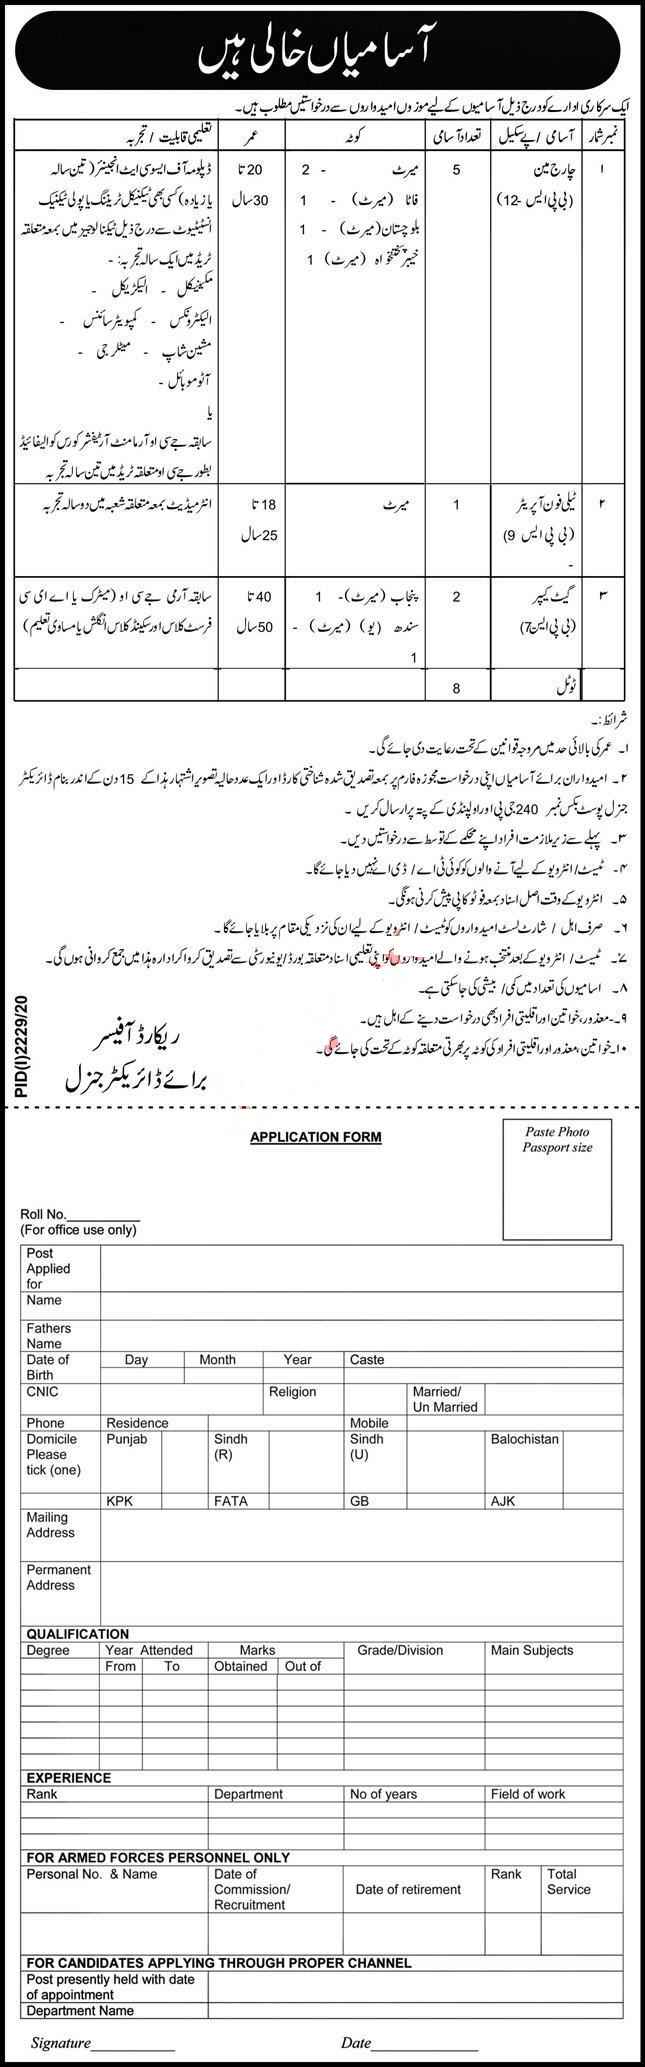 Public Sector Organization Jobs 2020 | P.O Box 240 GPO